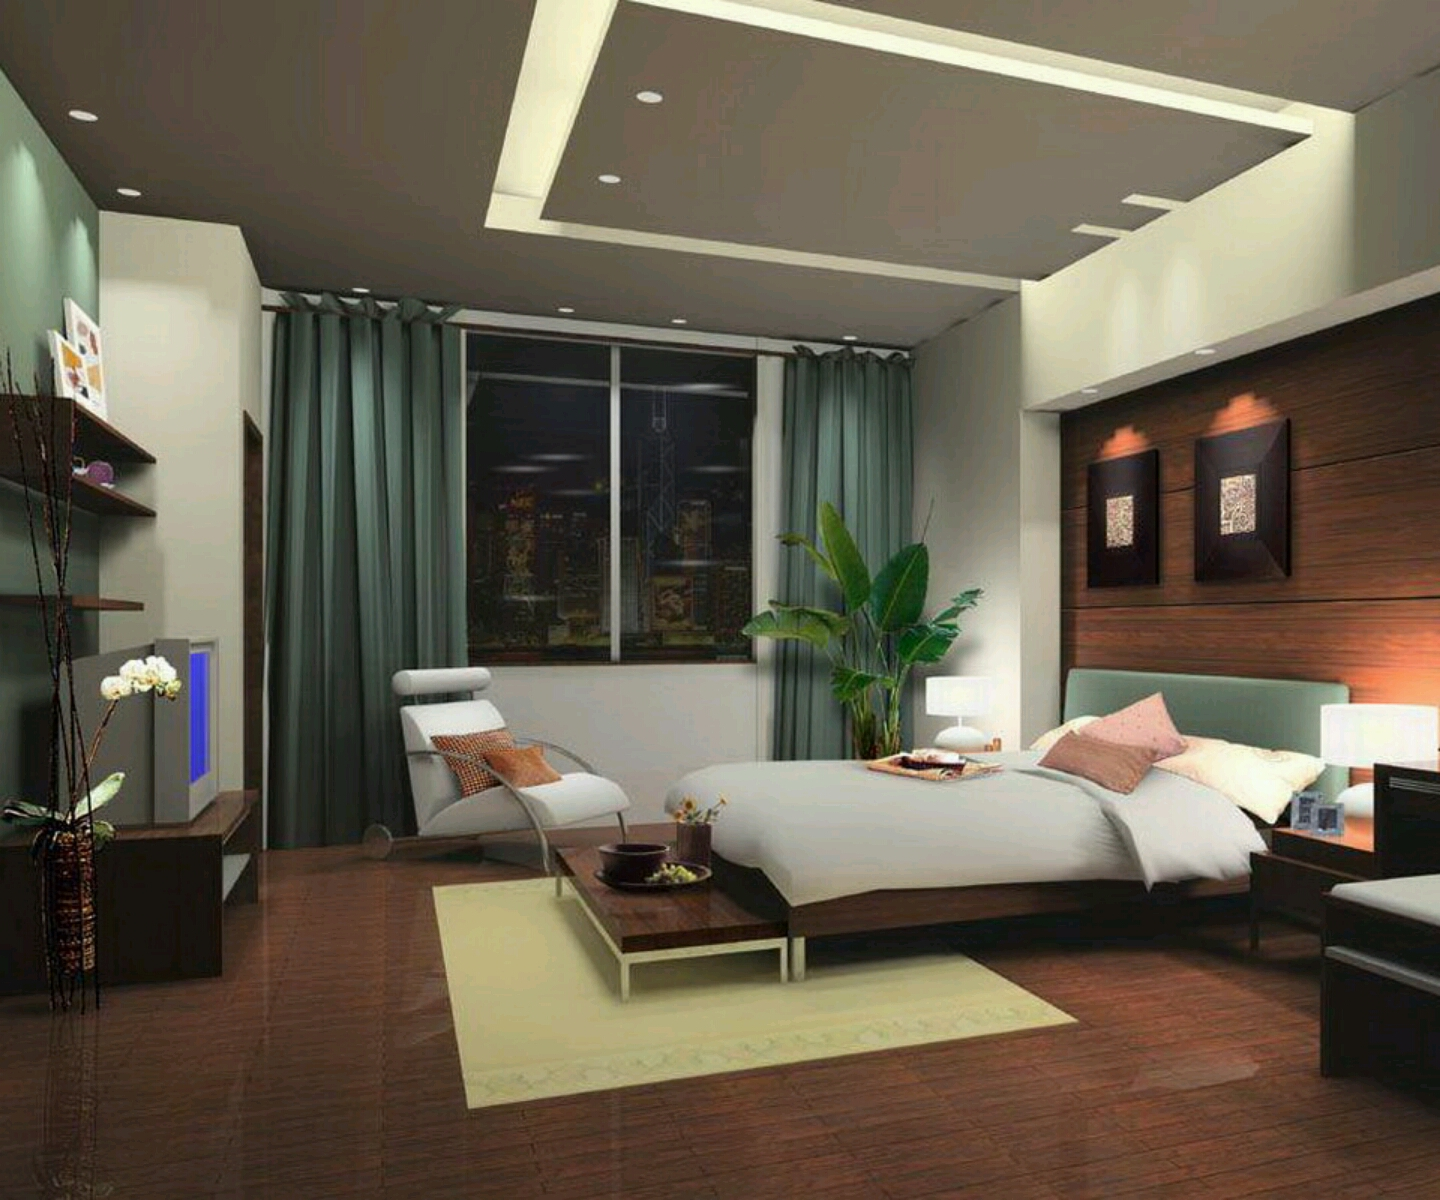 New home designs latest modern bedrooms designs best ideas for Latest room design